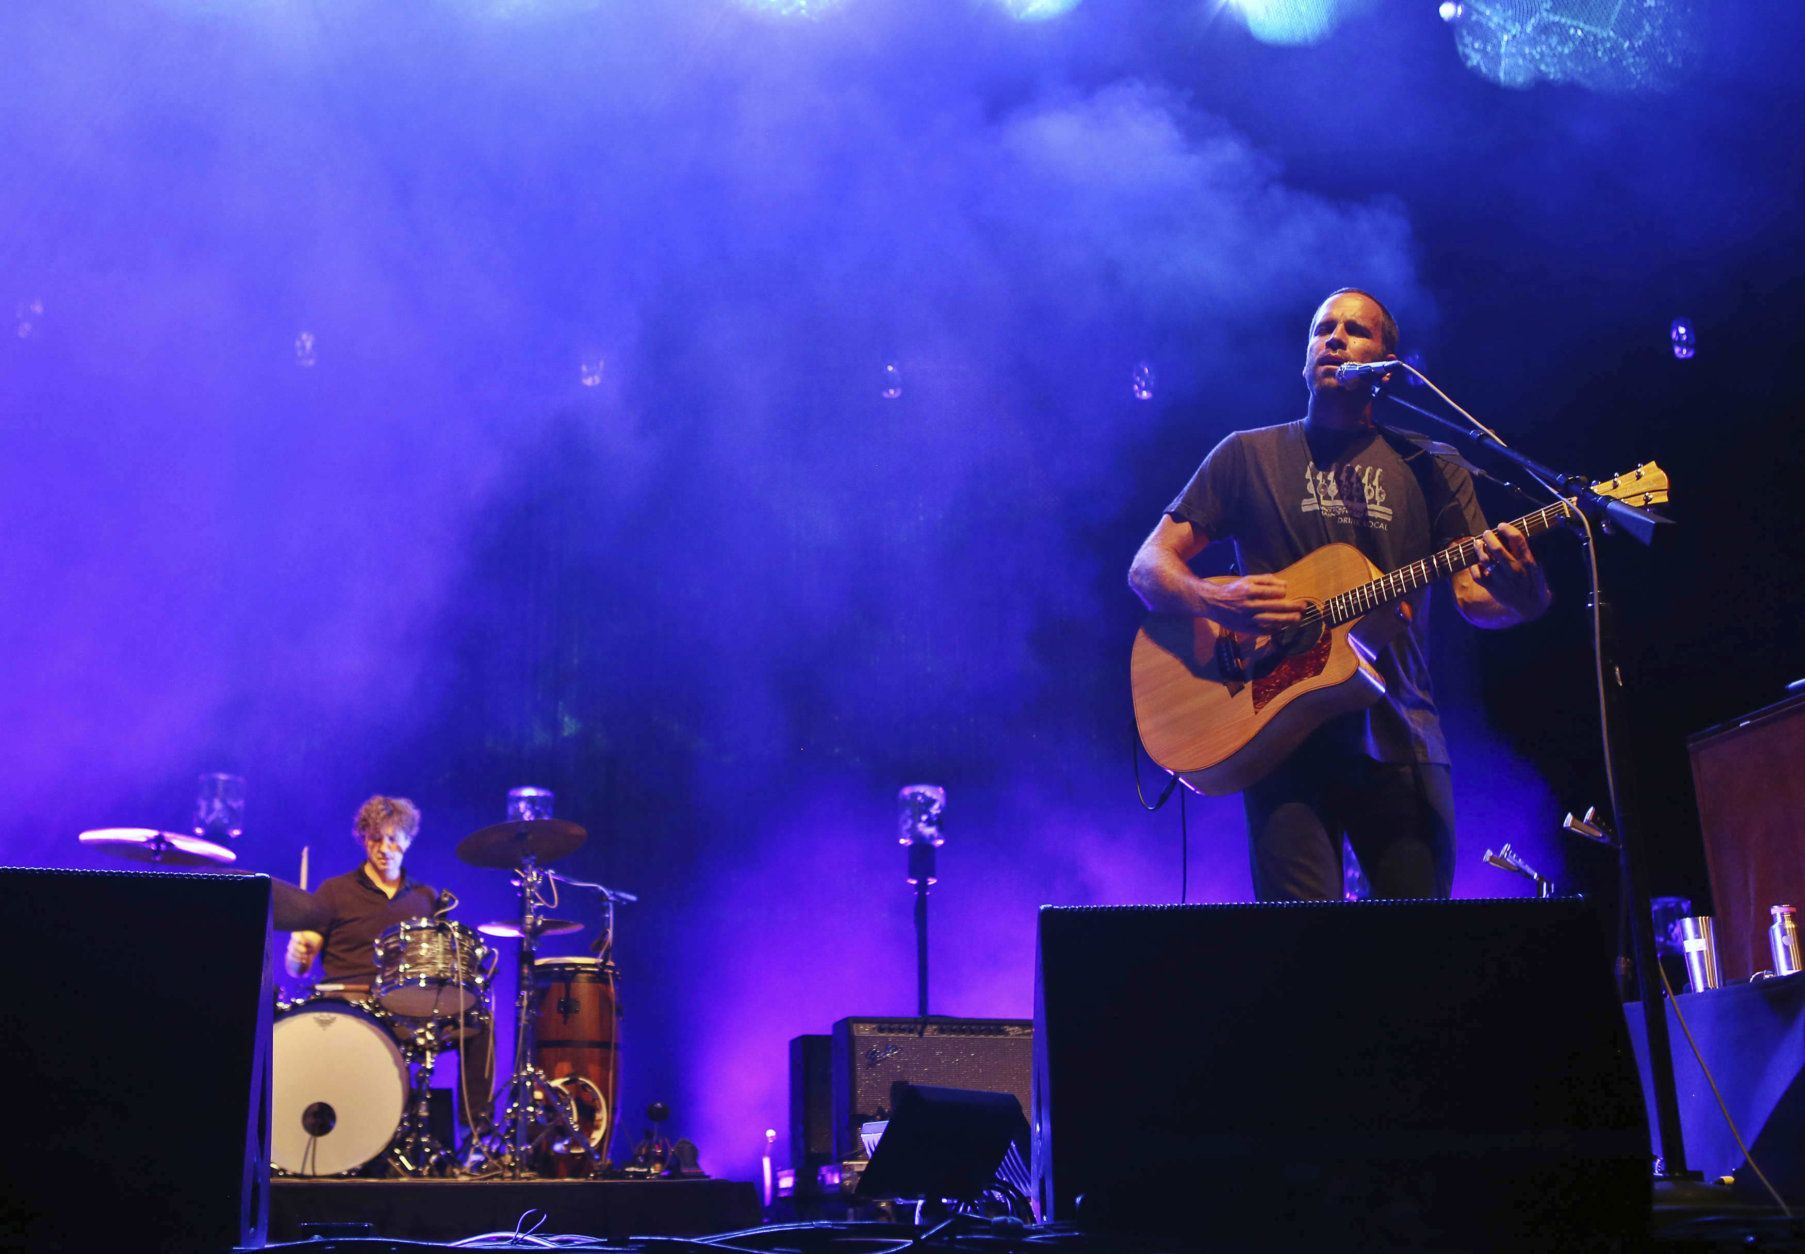 Jack Johnson and musicians perform at Lakewood Amphitheatre on Saturday, September 30, 2017, in Atlanta. (Photo by Katie Darby/Invision/AP)